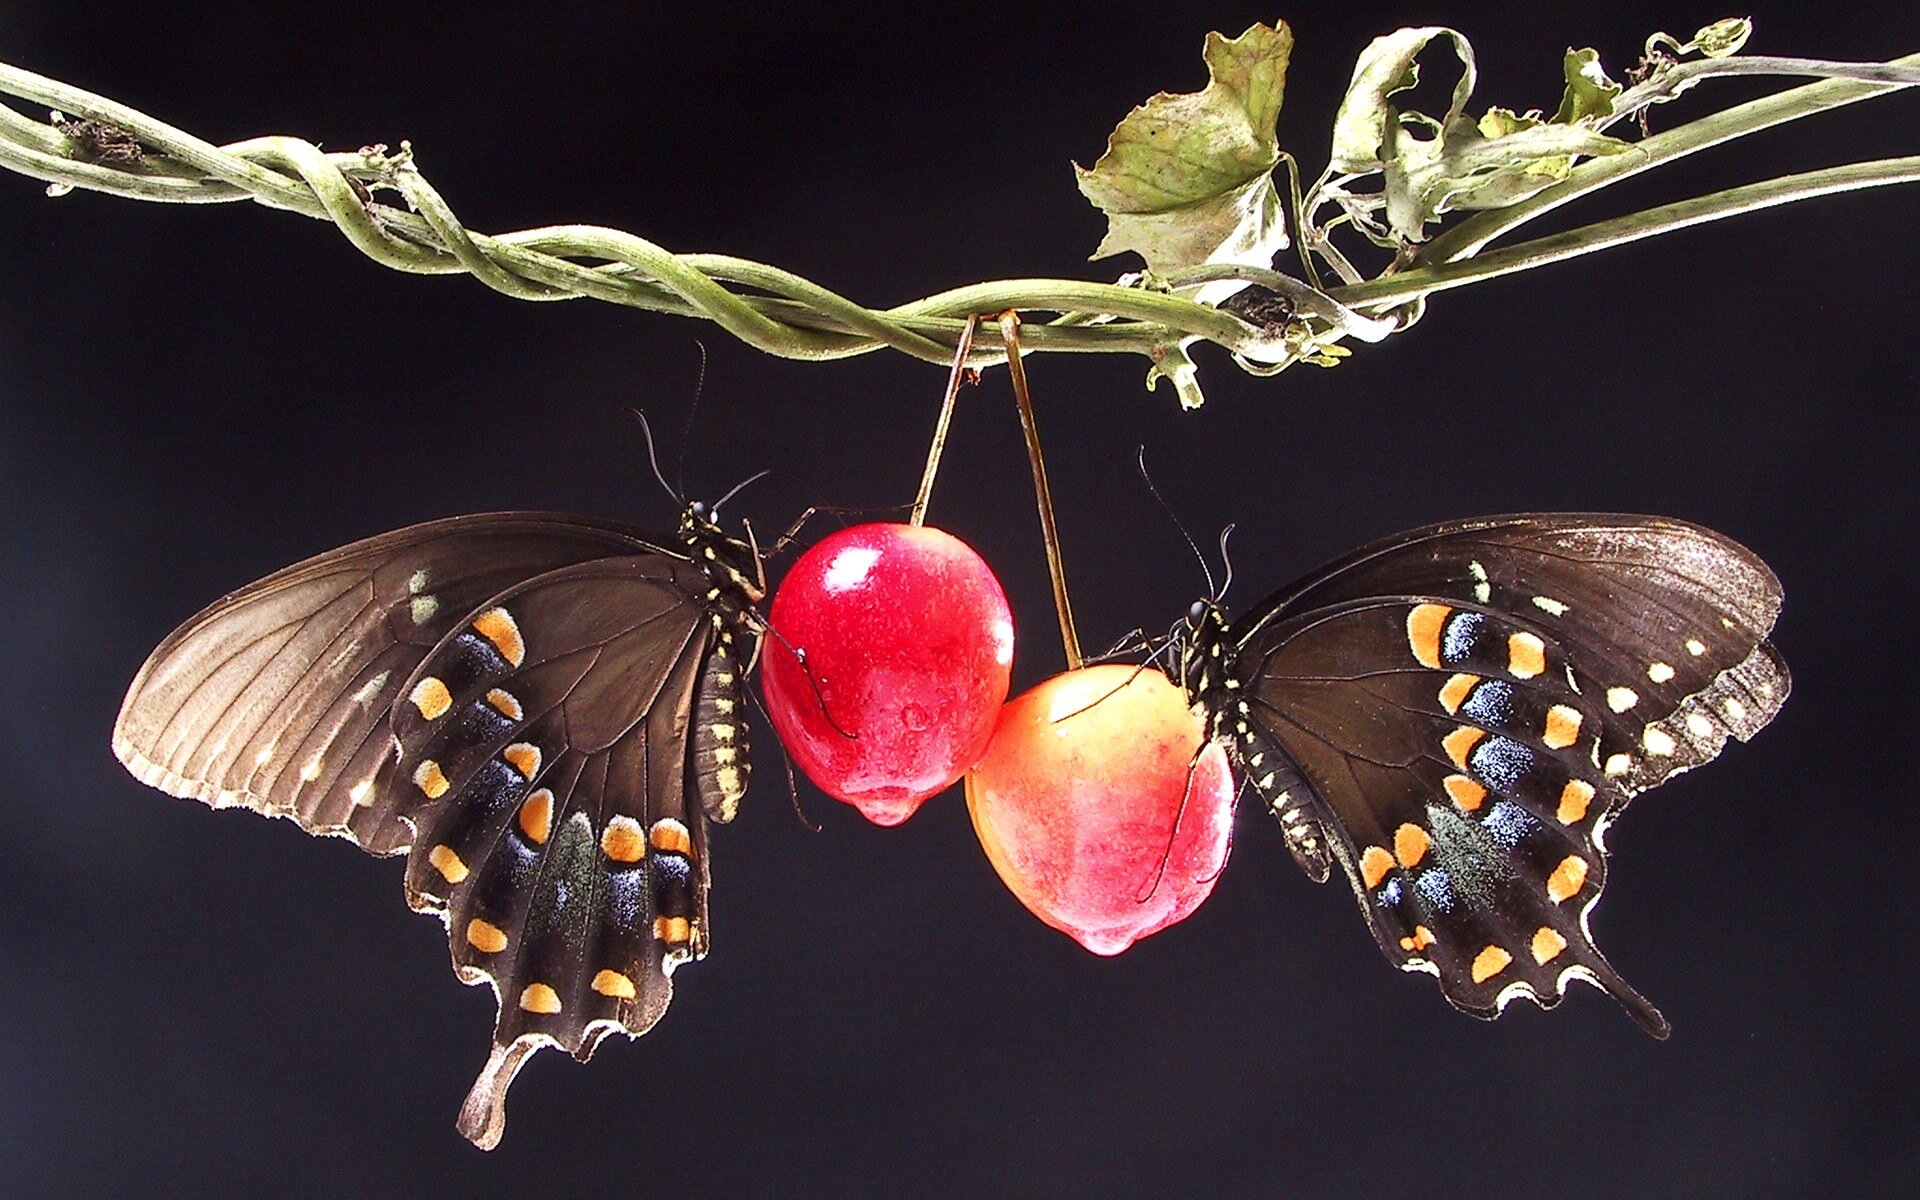 Butterfly Pavilion's Wings and Wine | The Denver Ear